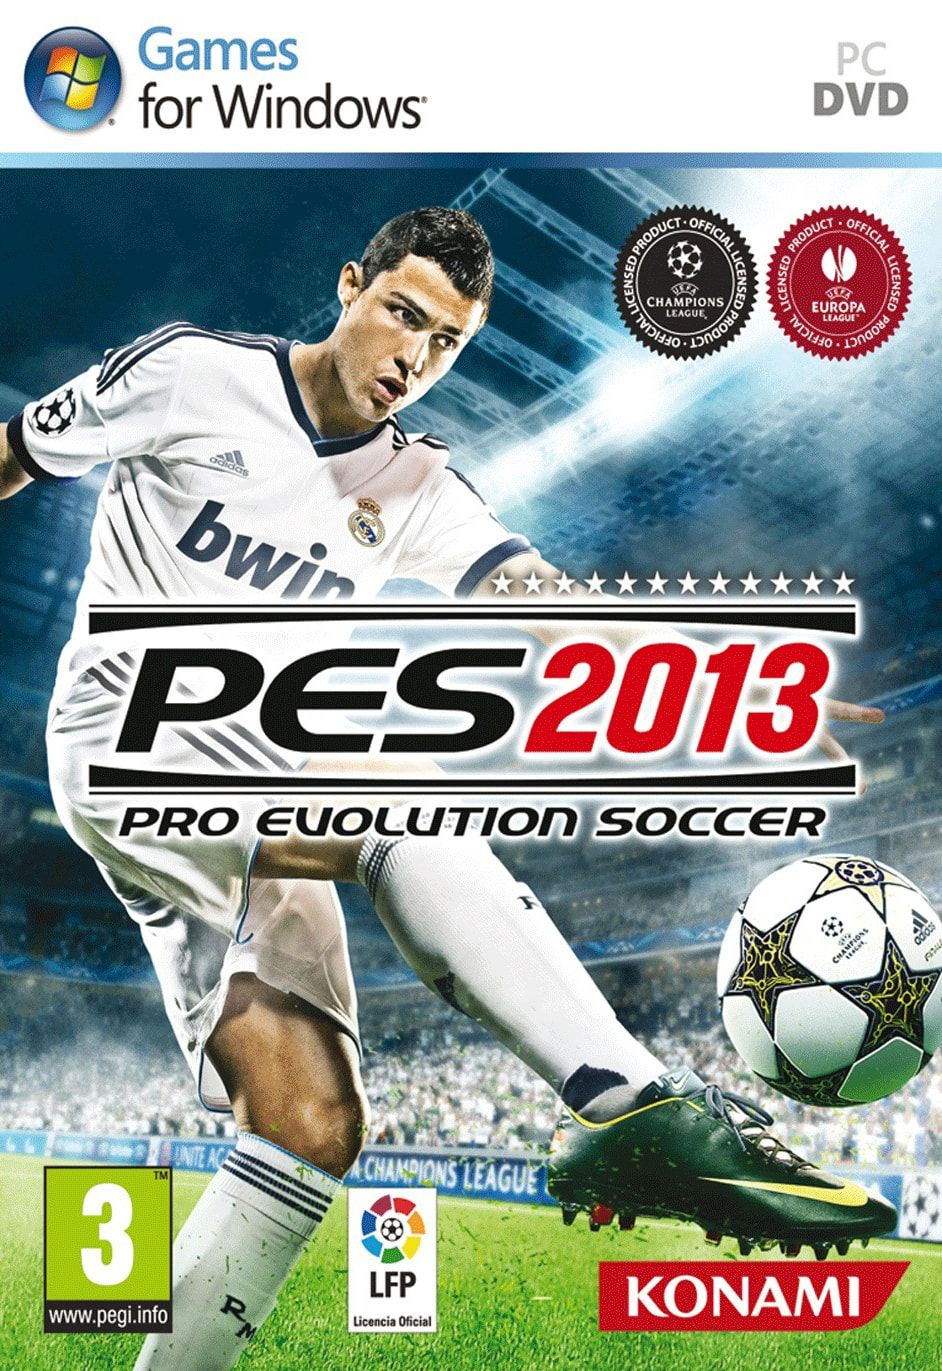 Download Gratis Pro Evolution Soccer 2013 Full Version